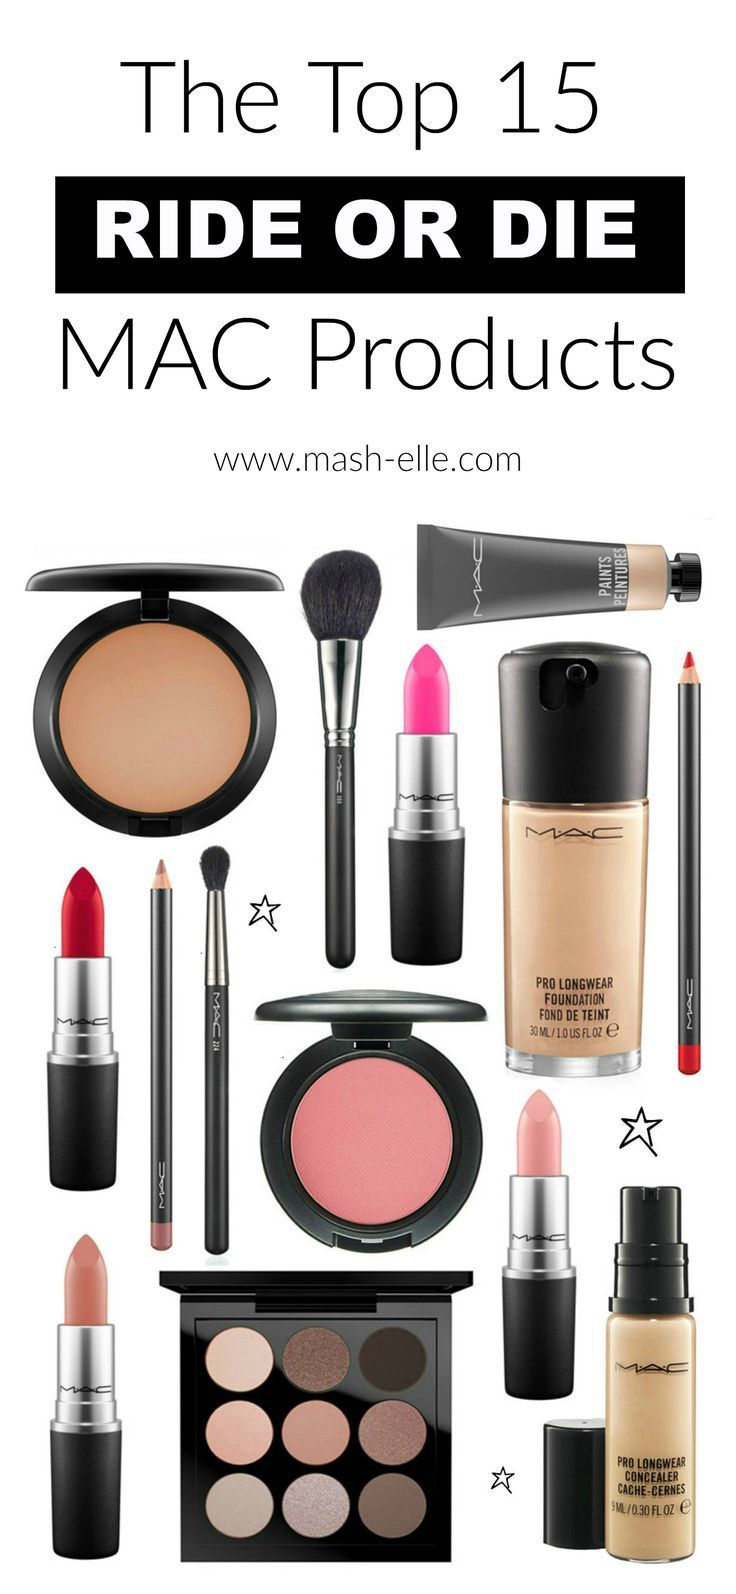 You need these MAC products in your life! | Beauty blogger Mash Elle rounds up the top 15 ride or die MAC products from foundation to blush, lipstick and concealer! Any of these products would be perfect for Christmas or birthday gifts!